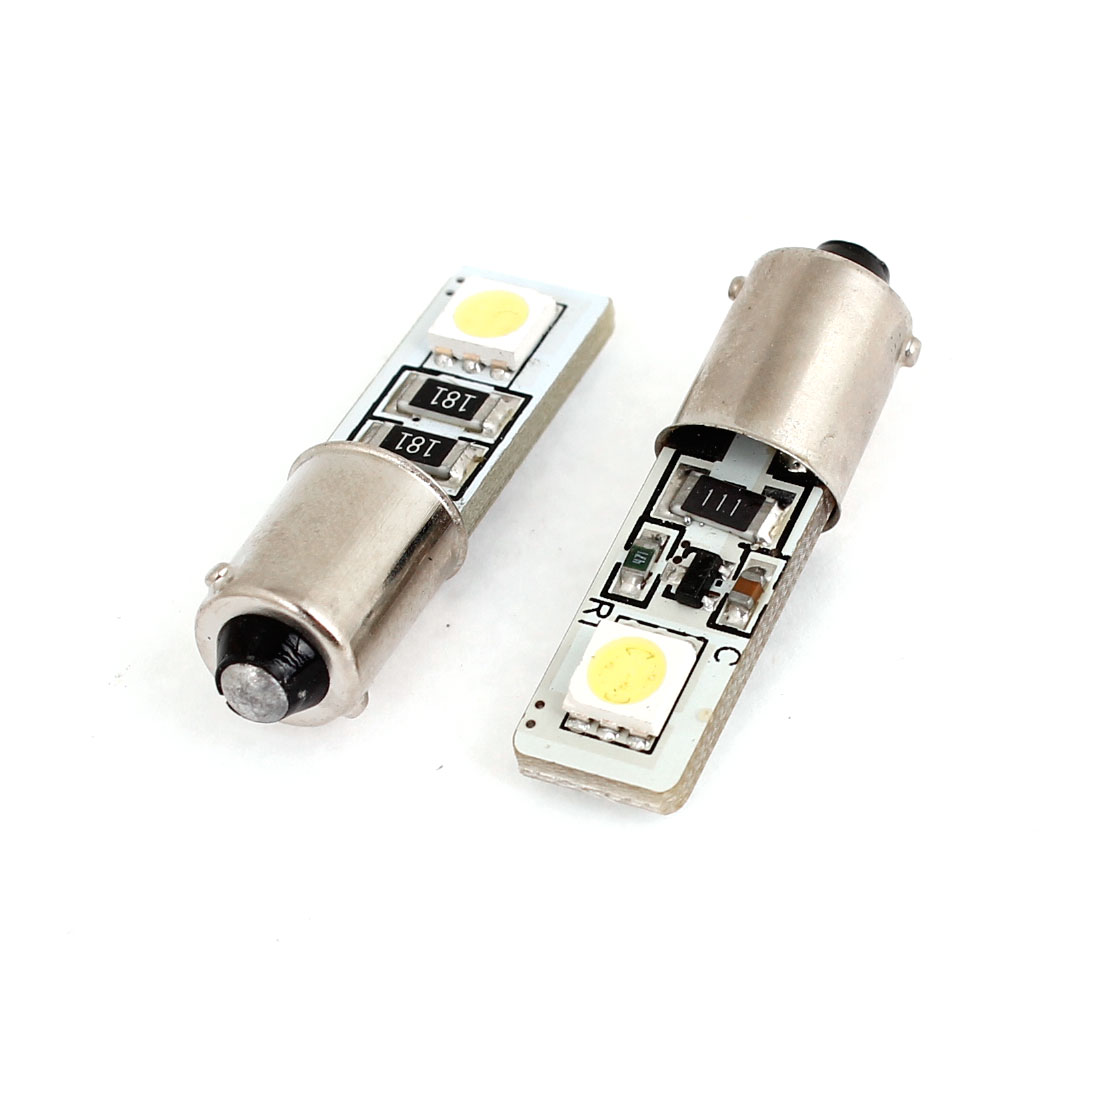 2PCS BA9S 2 LED 5050 SMD Canbus Turn Back up Light Bulb White for BMW Benz